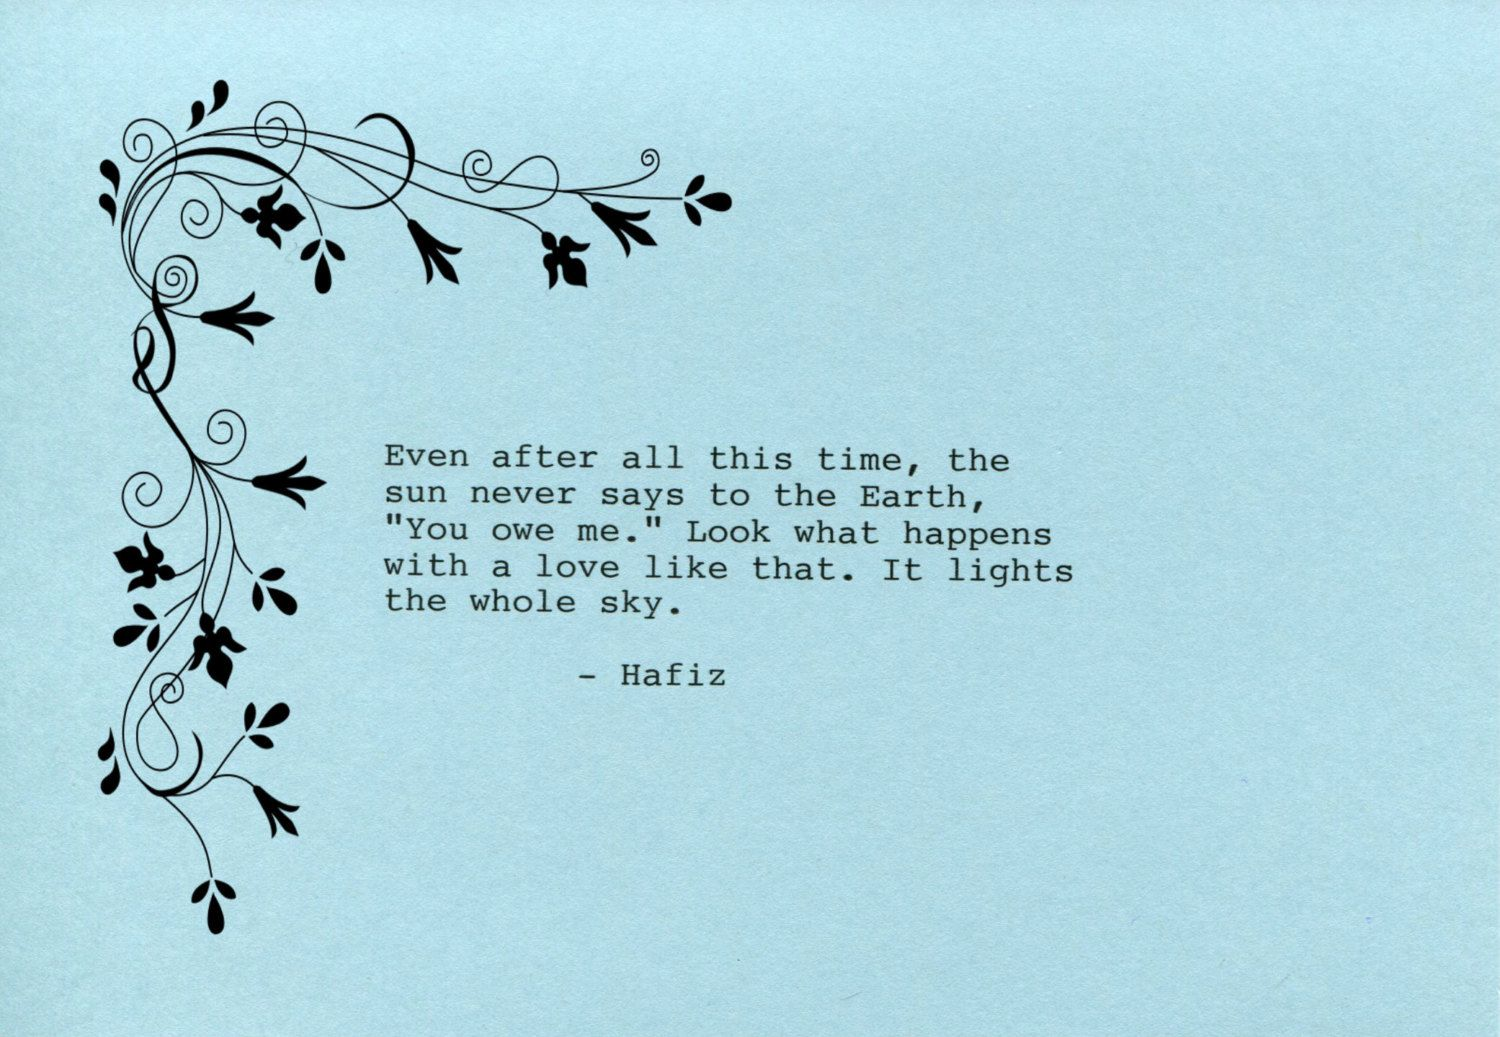 Hafiz Quote Made on Typewriter  Art Quote Wall Art - Even after all this time the sun never says to the Earth You owe me... by FlightOfFancyPrints on Etsy